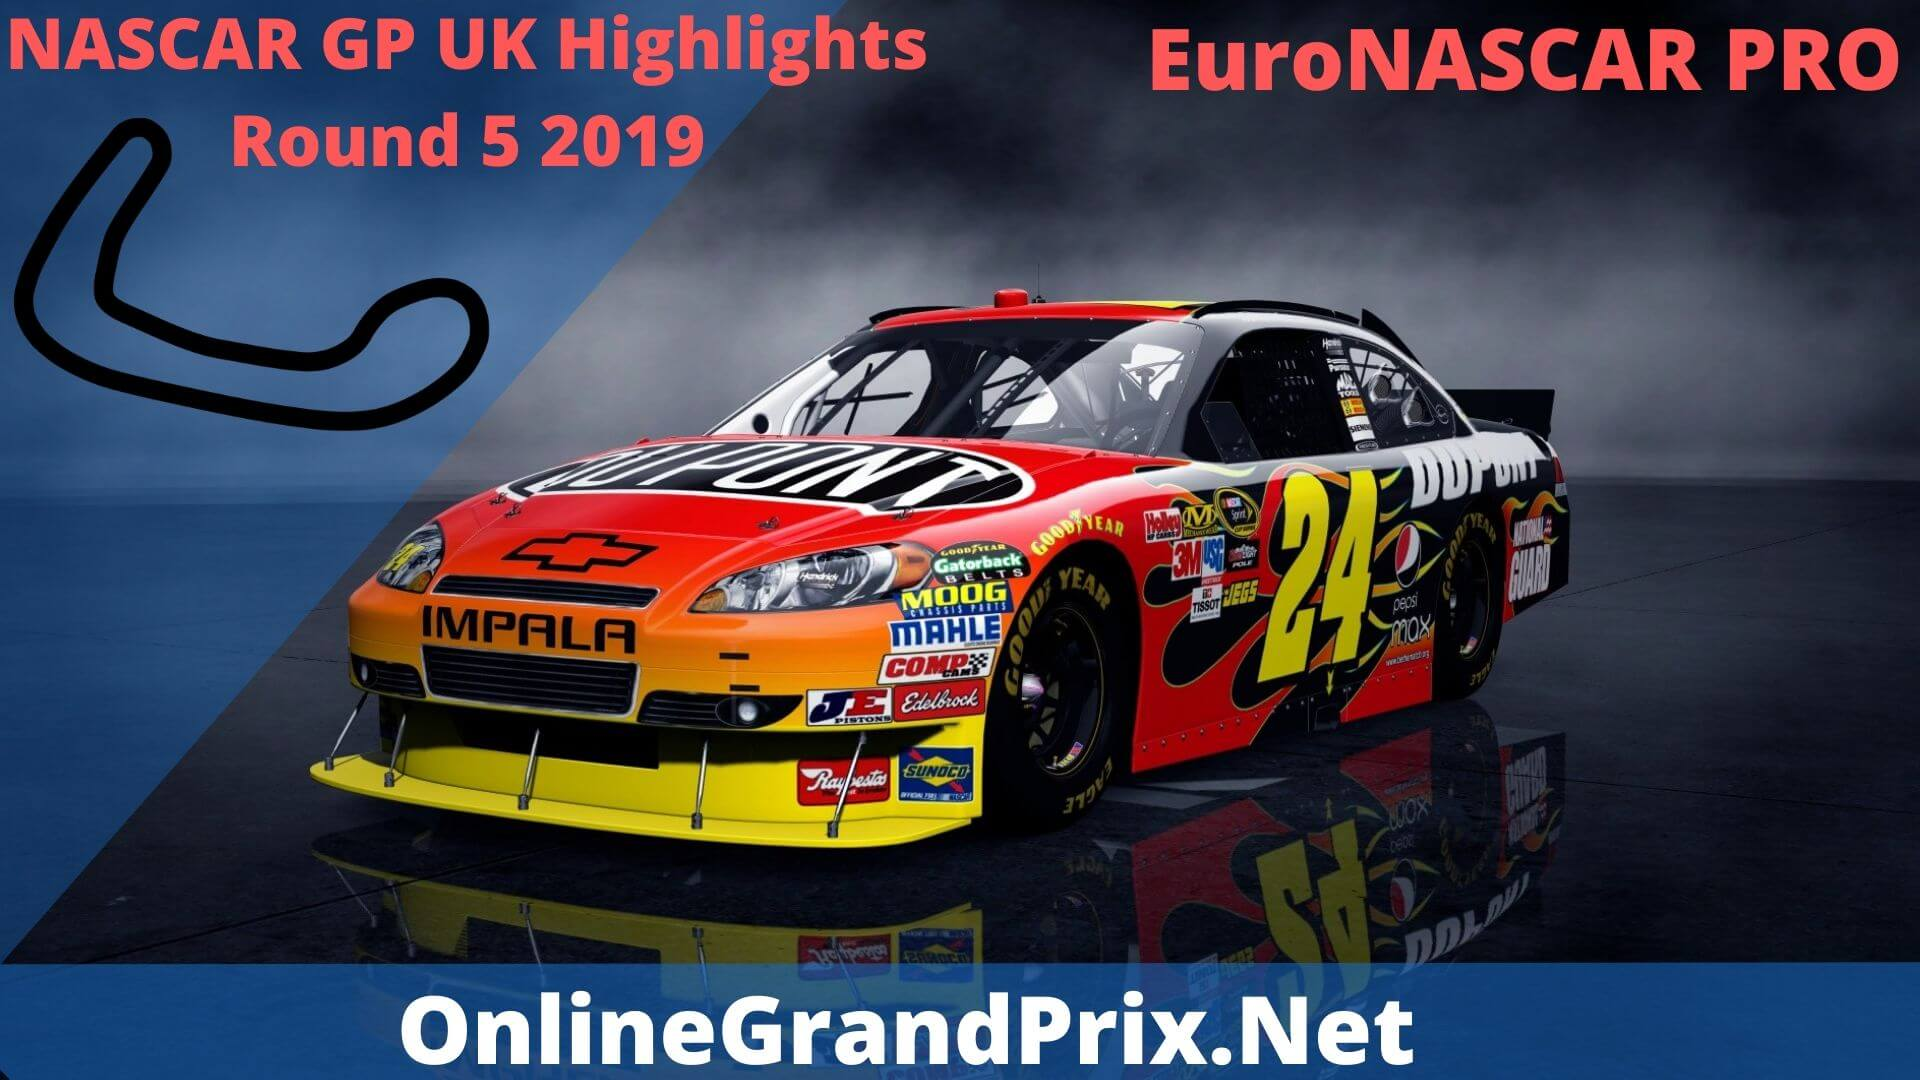 NASCAR GP UK Round 5 Highlights 2019